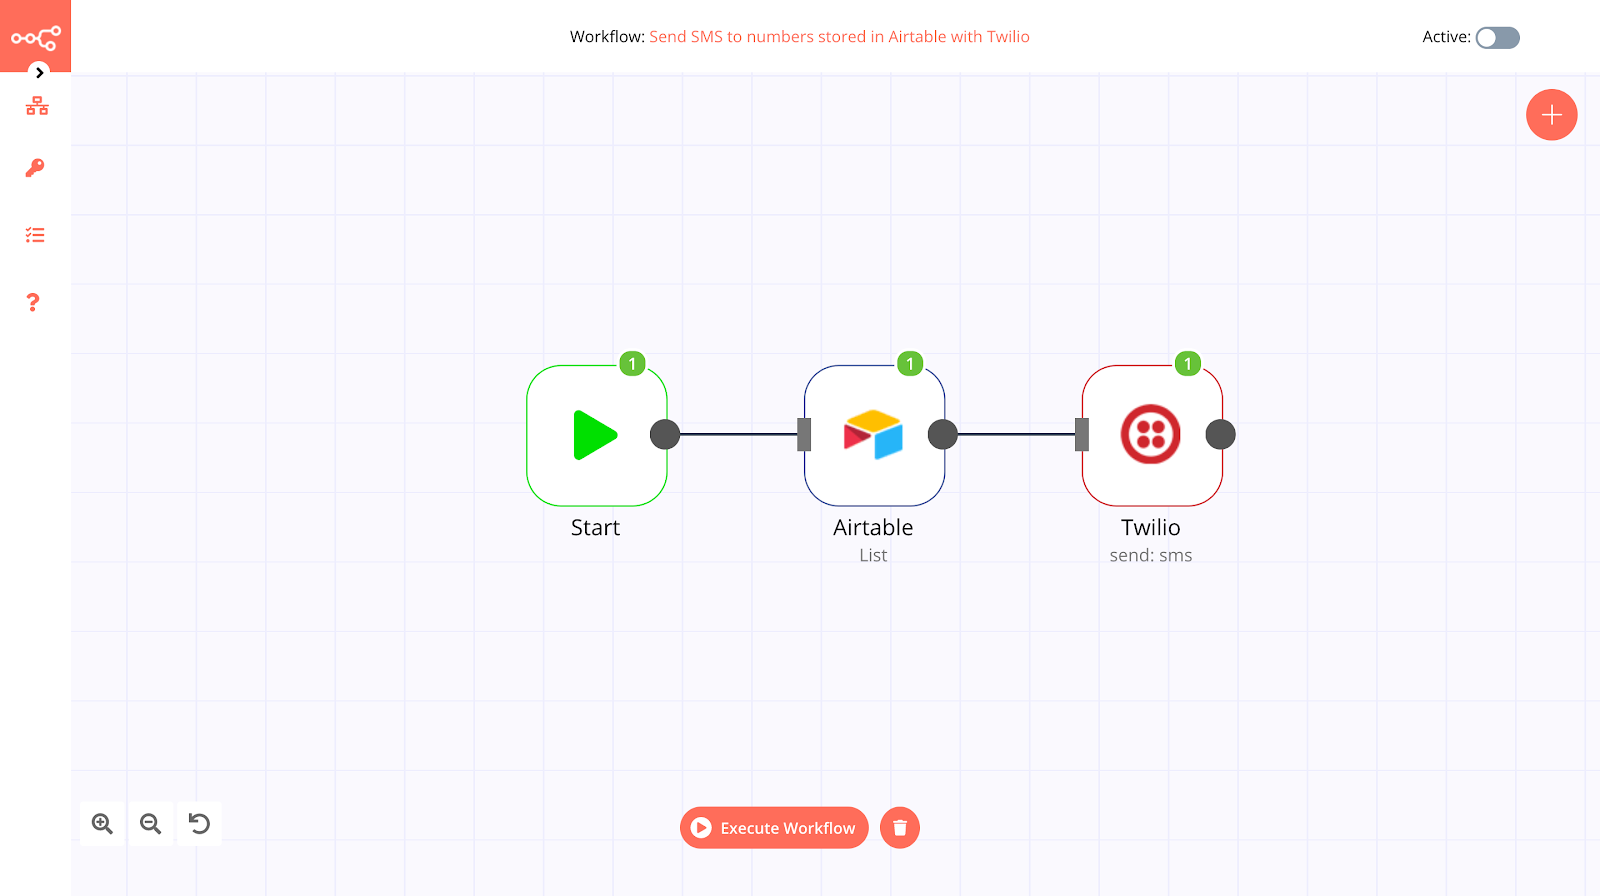 Screenshot of the workflow for sending SMS to numbers stored in Airtable